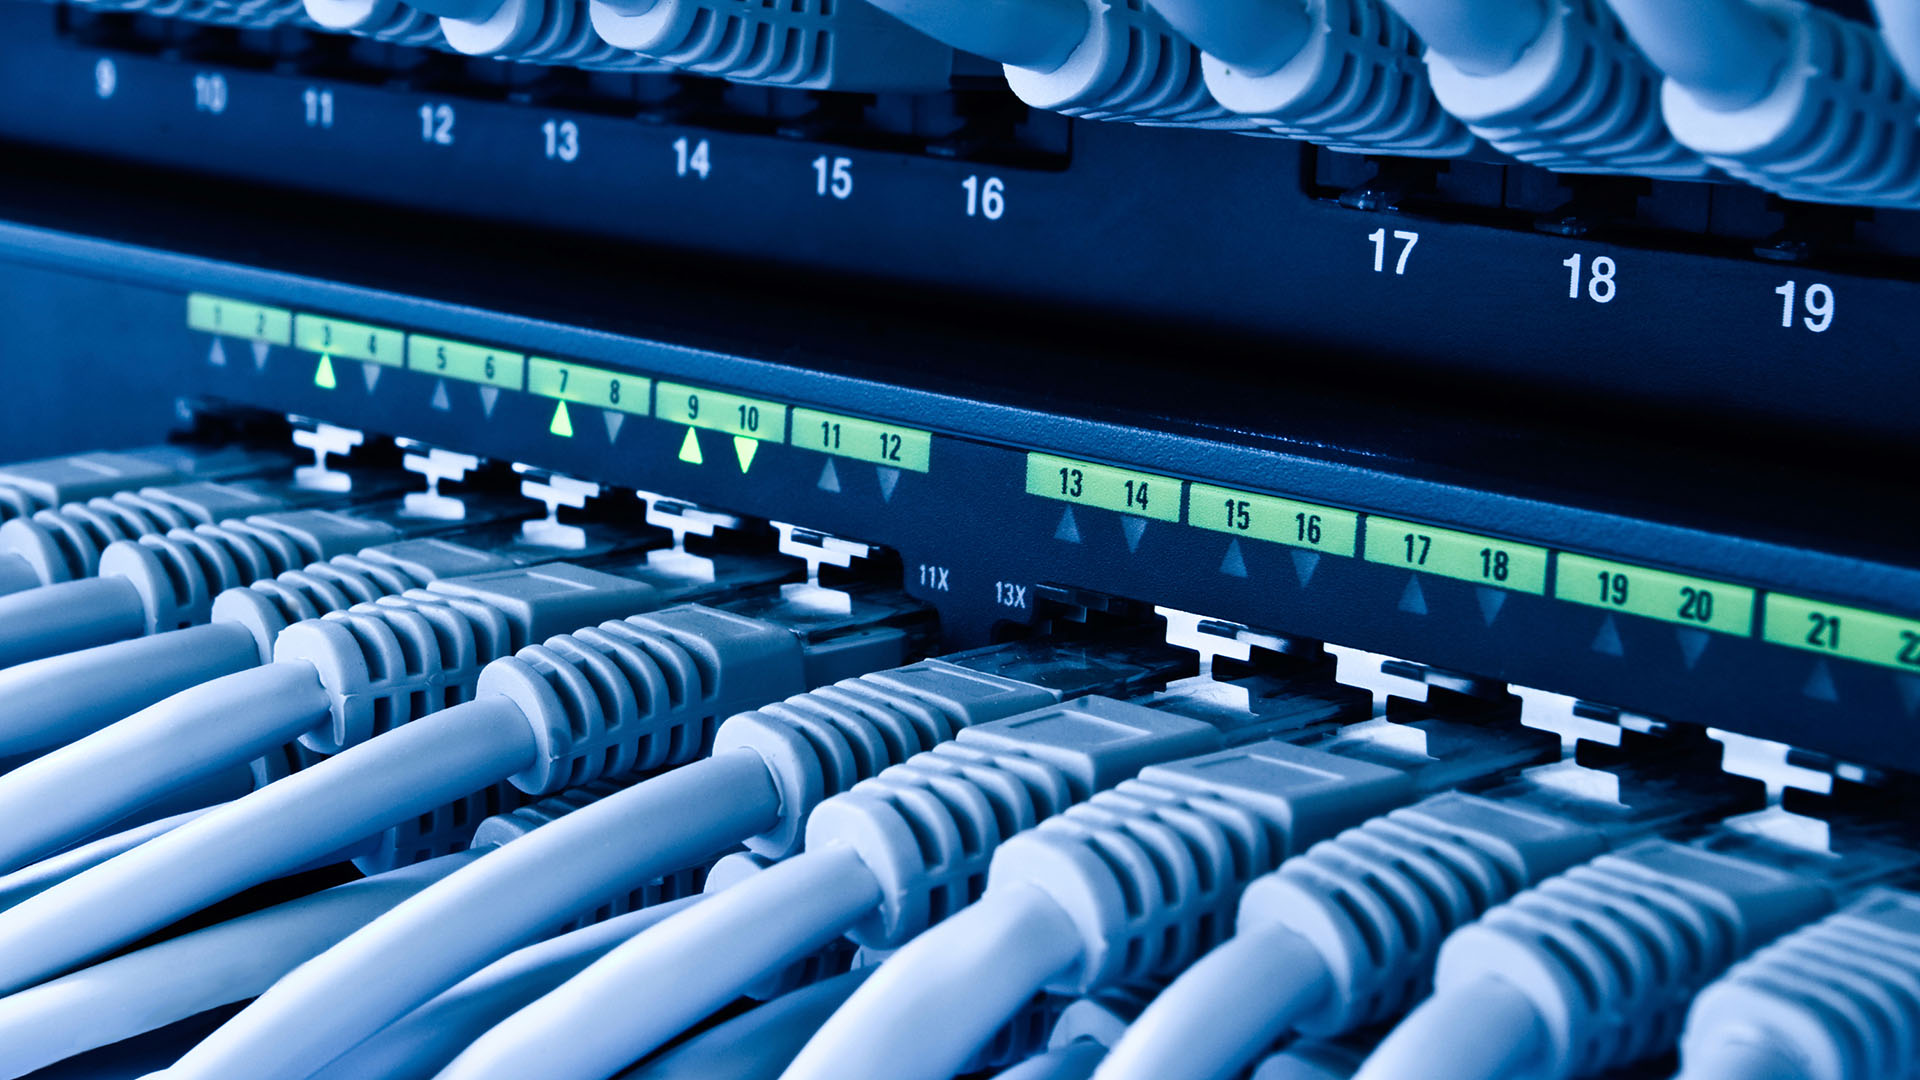 Lighthouse Point Florida Preferred Voice & Data Network Cabling Contractor